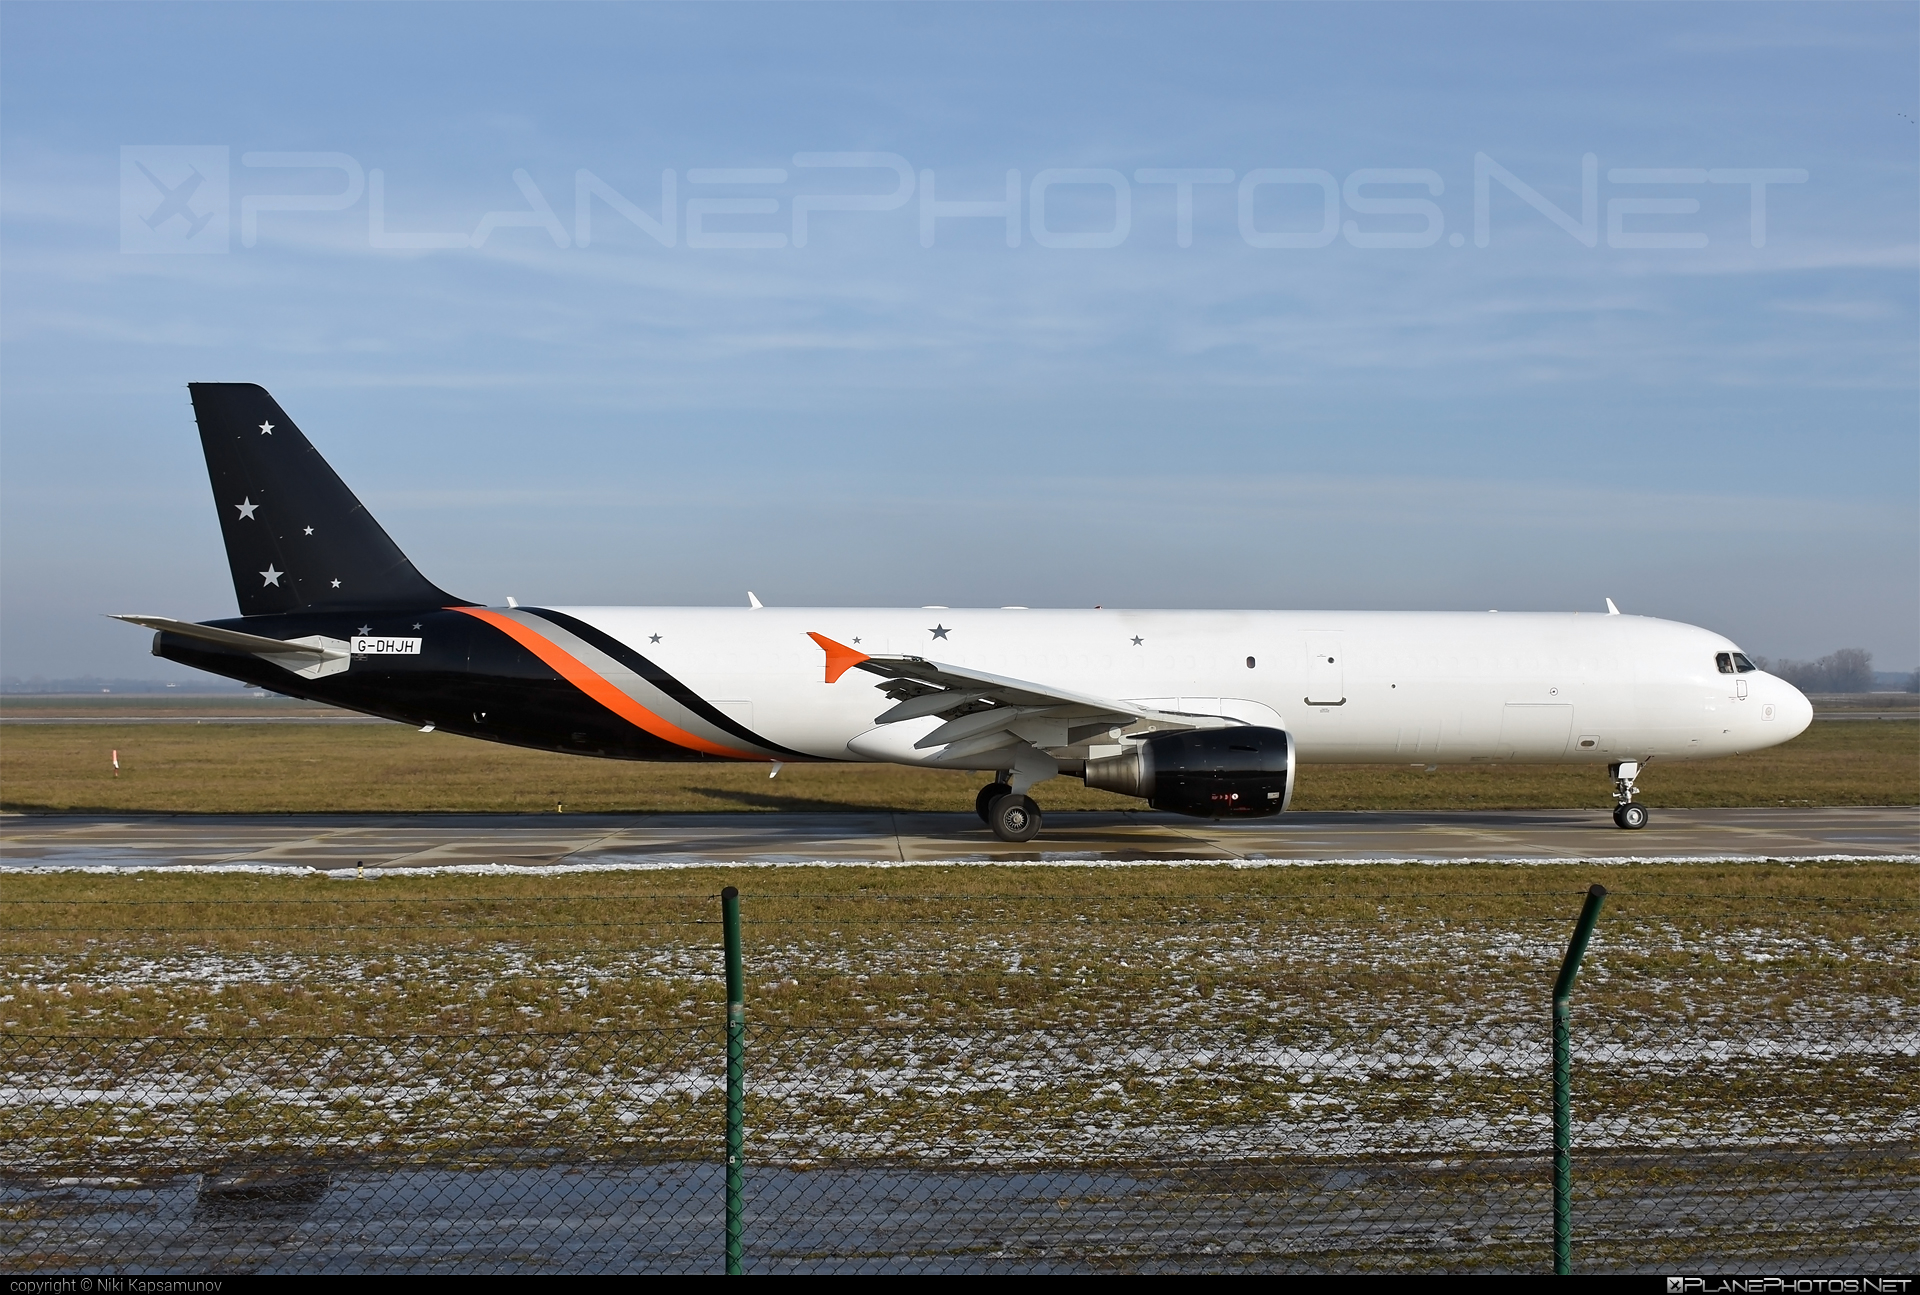 Airbus A321-211P2F - G-POWY operated by Titan Airways #a321freighter #a321p2f #airbus #titanairways